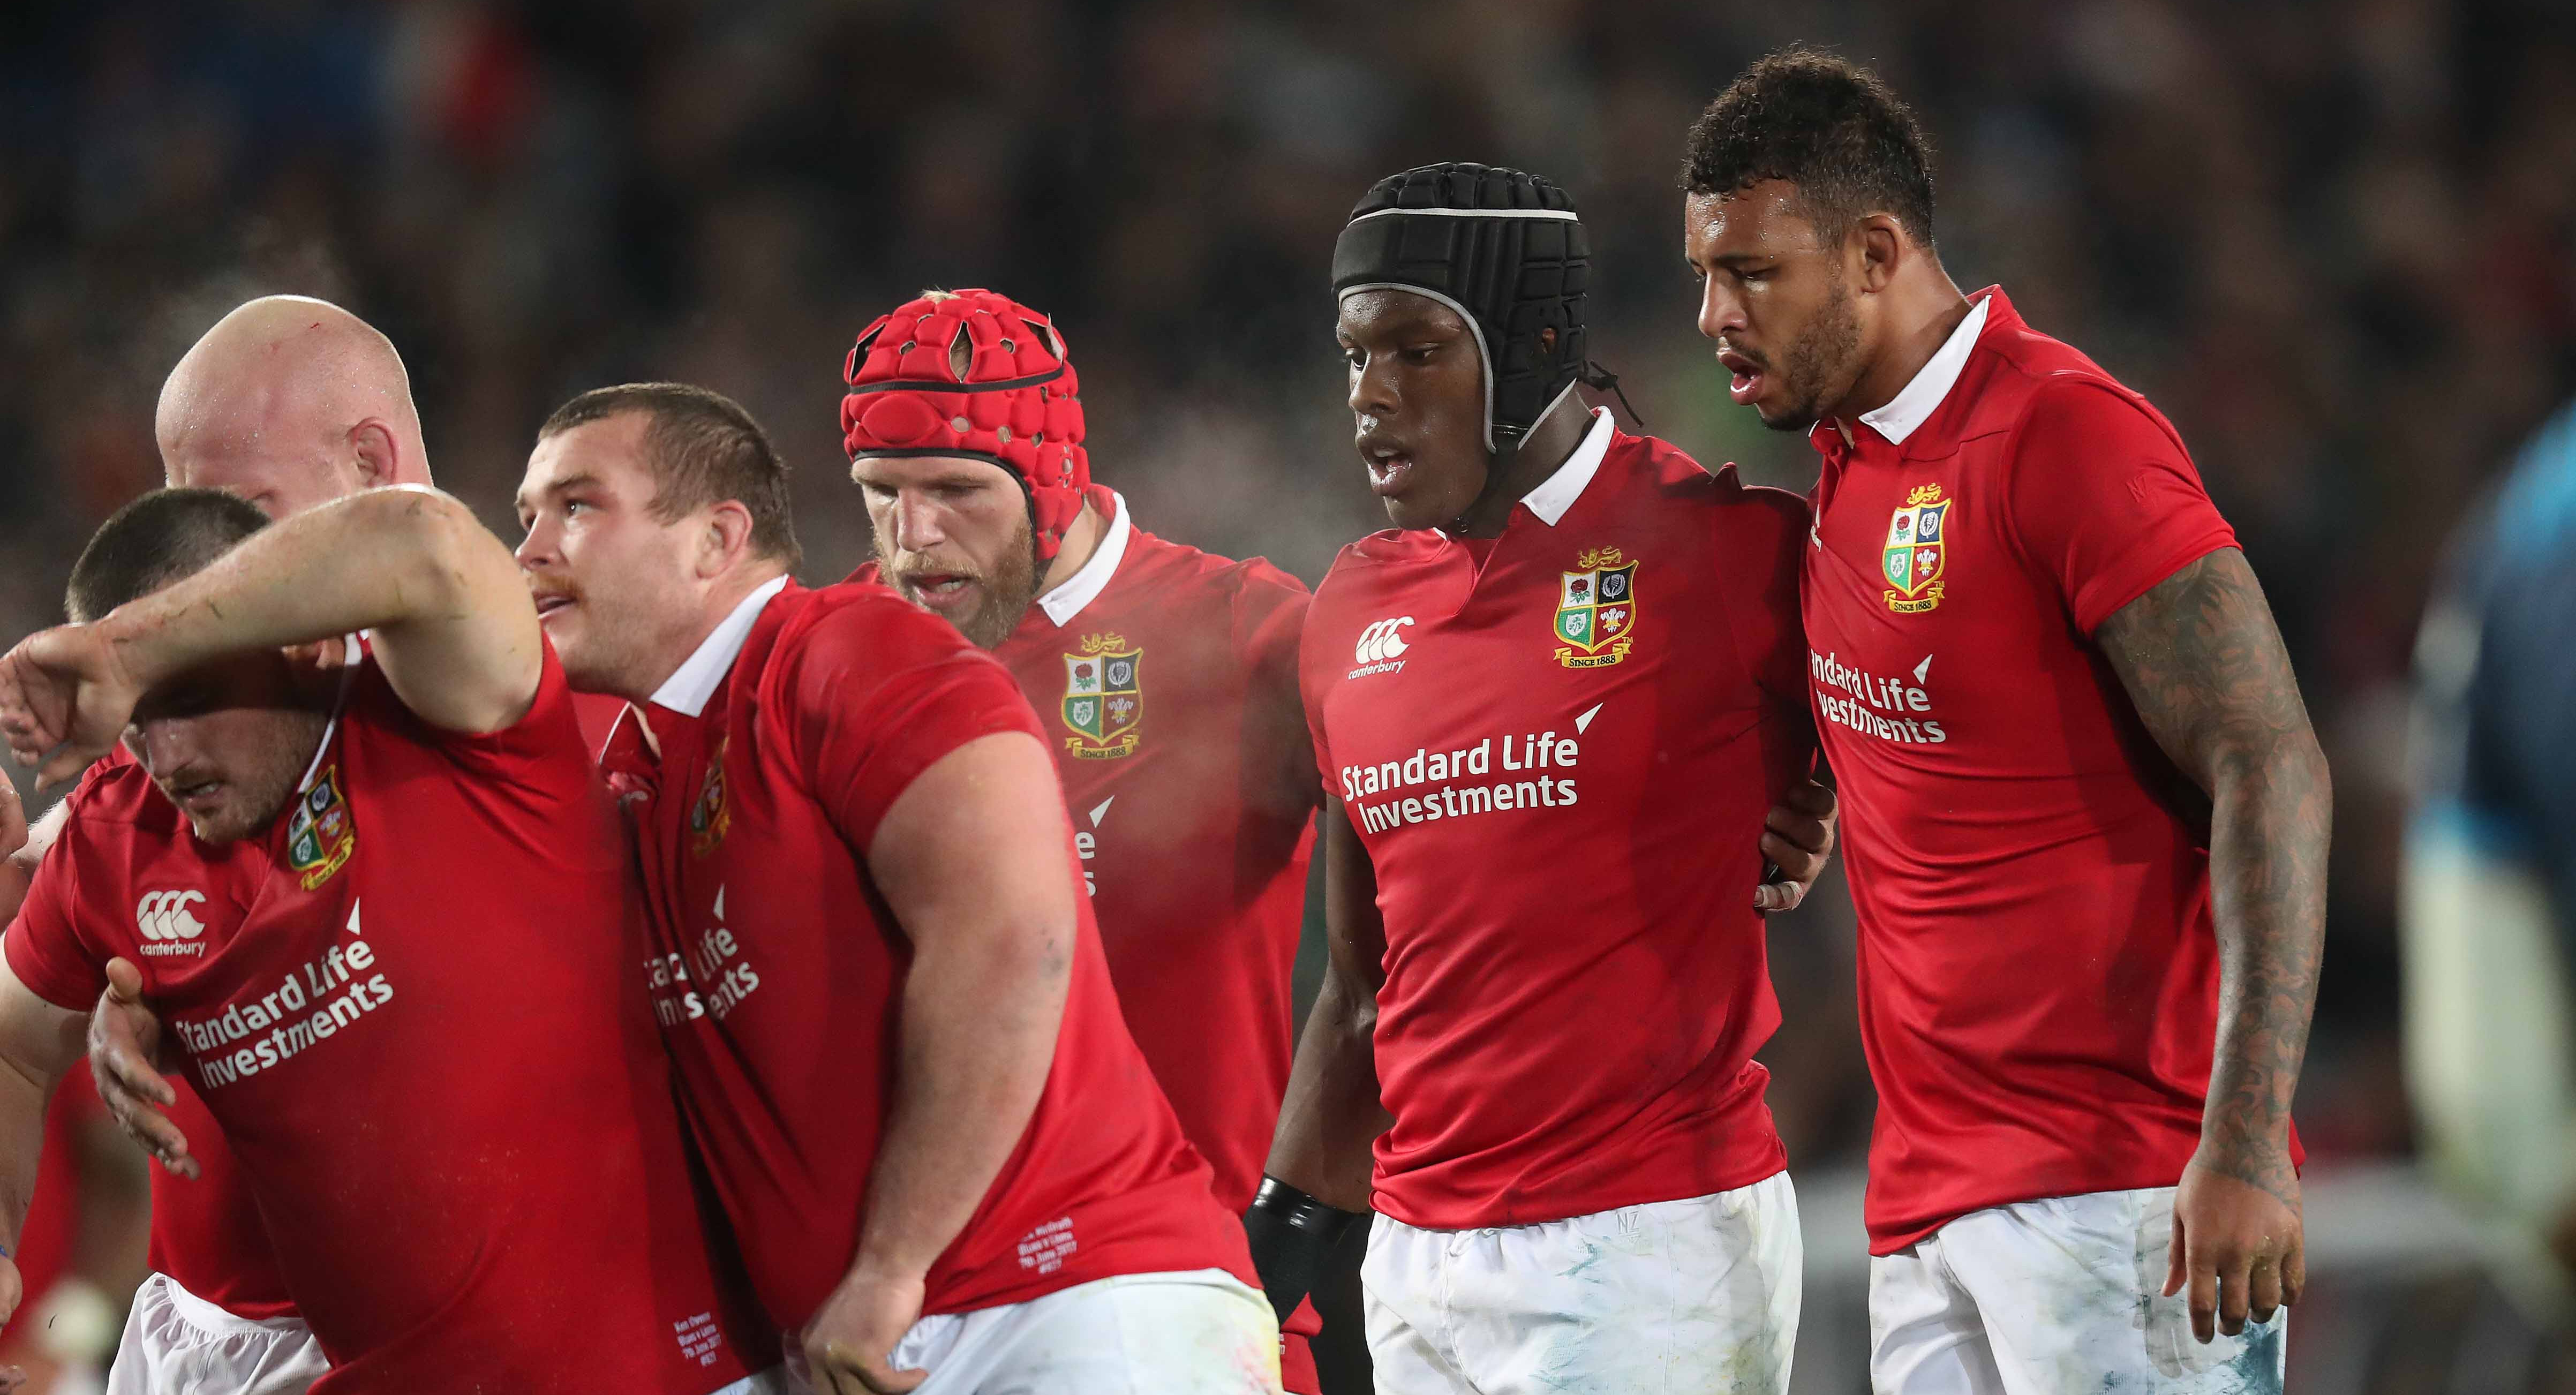 Preview: Lions Return to Action for Round Two of Autumn Internationals